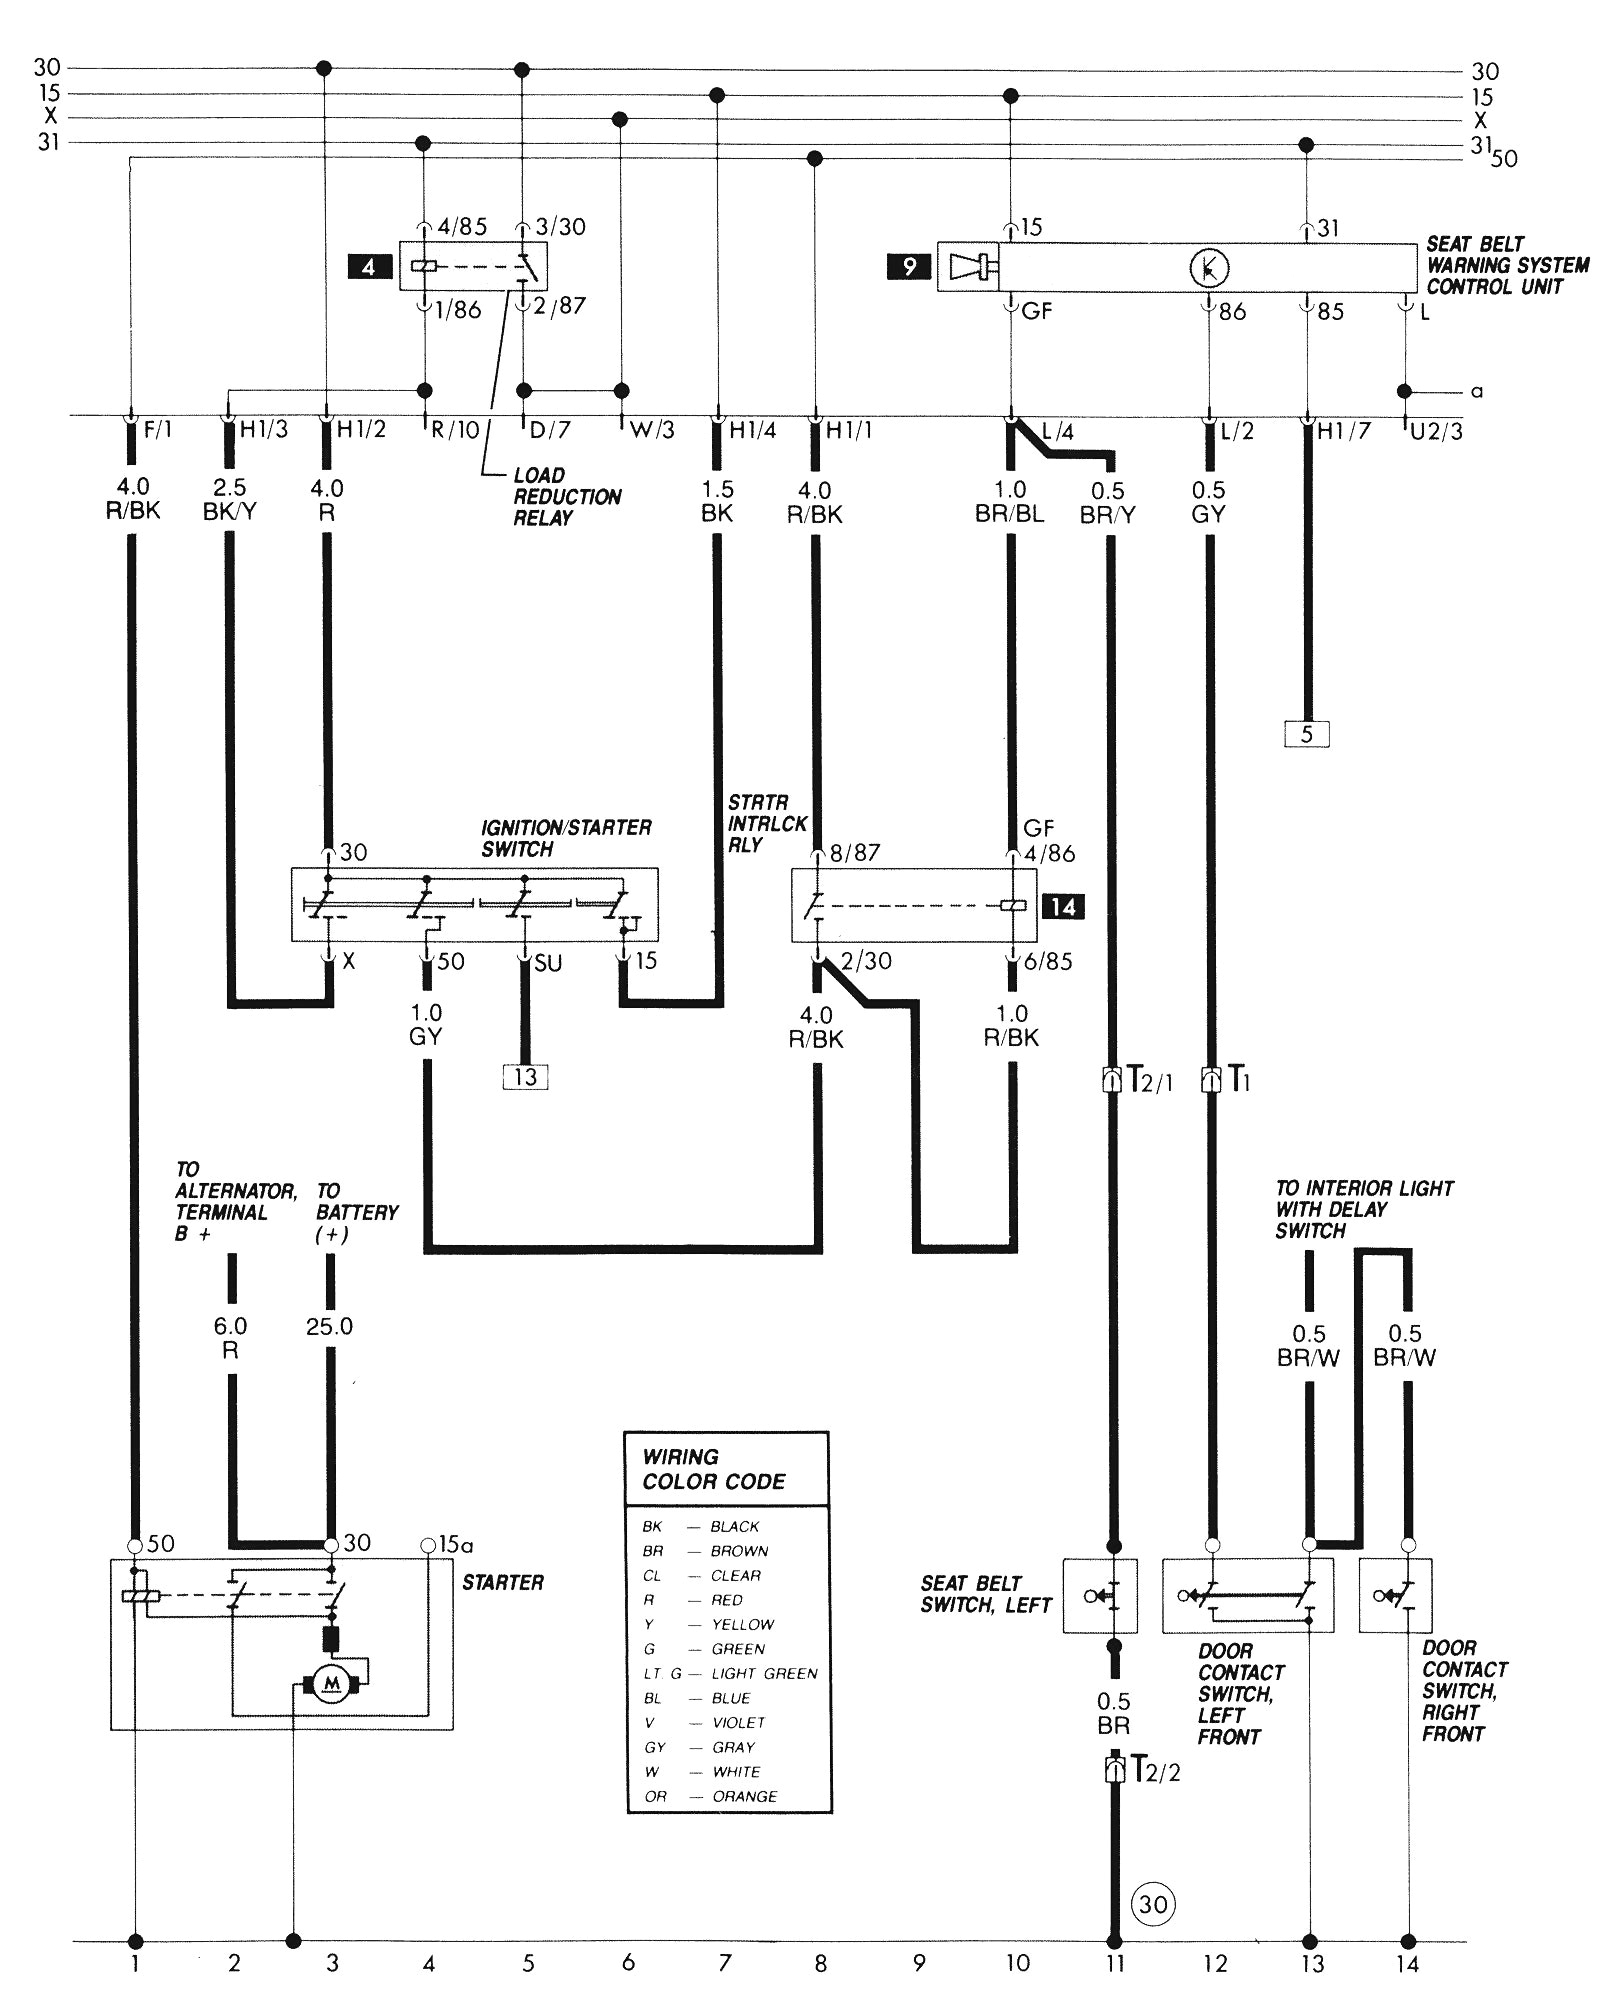 2006 Vw Jetta Wiring Diagram 2006 Tdi Wiring Diagram Schematic Diagram Database